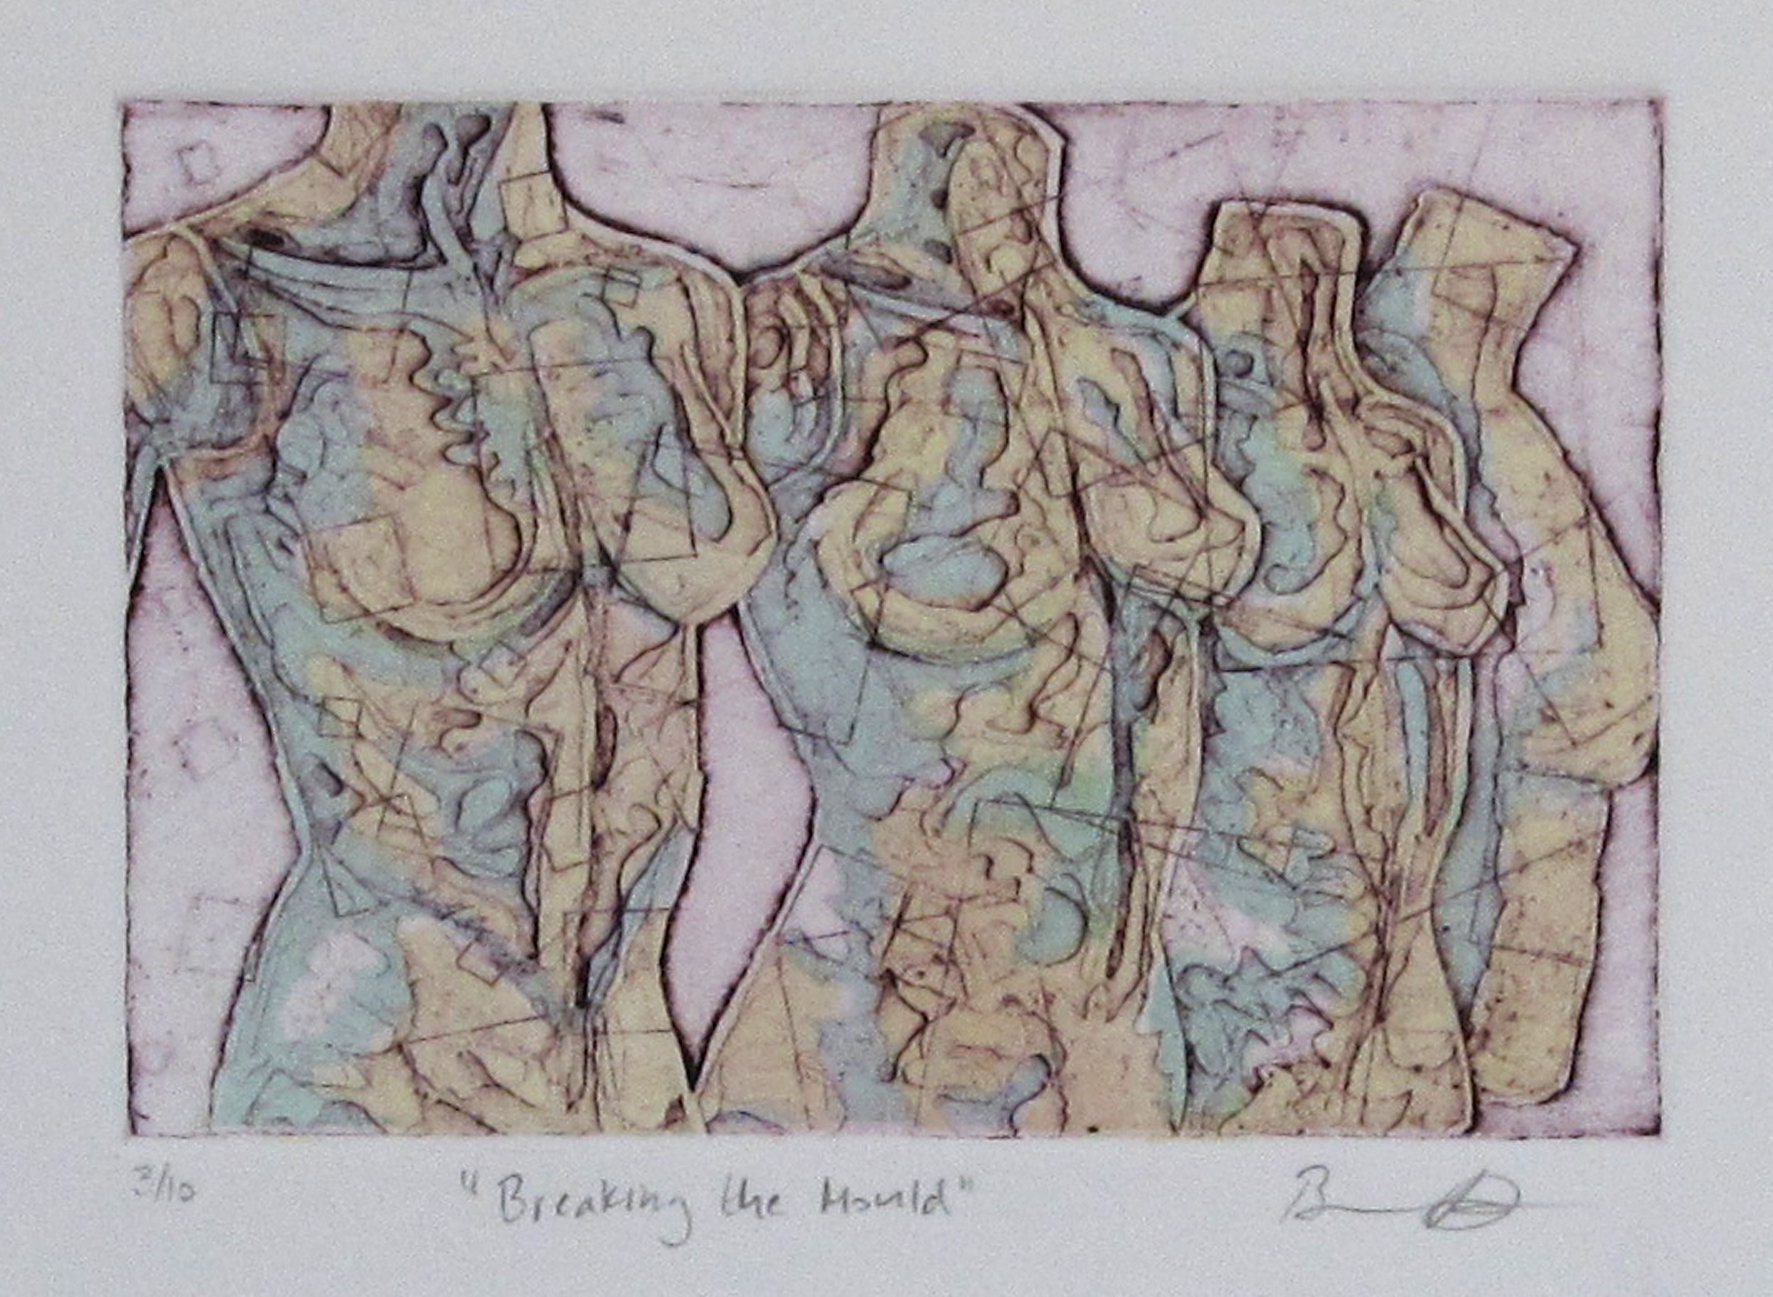 "Breaking the Mould    - 2013, ink on paper, 4x6"" image, etching and open bite"